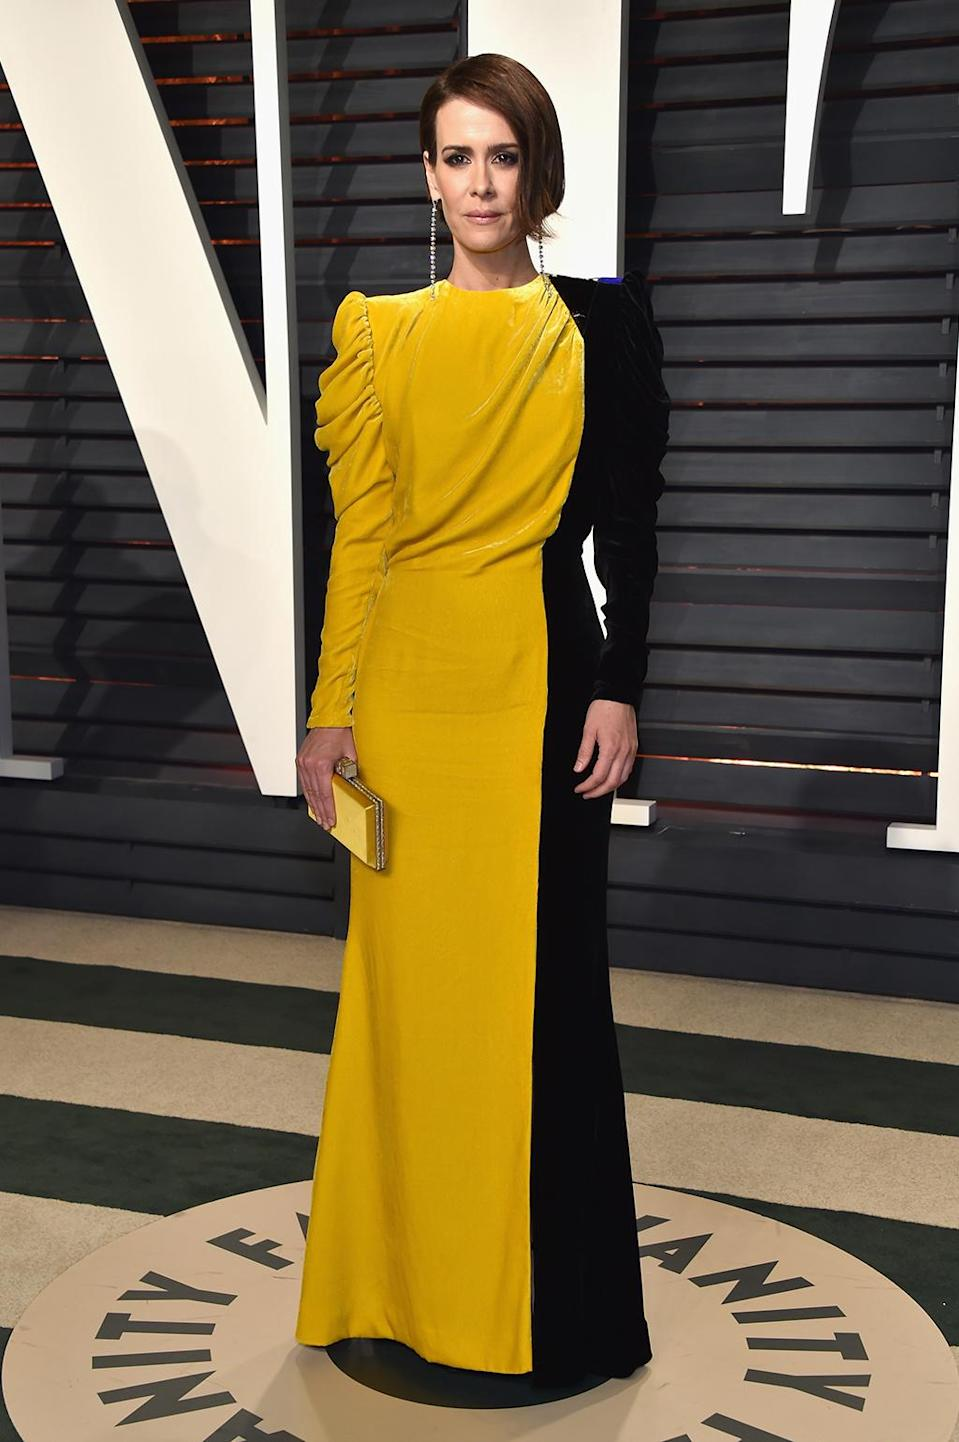 <p>Sarah Paulson attends the 2017 Vanity Fair Oscar Party hosted by Graydon Carter at Wallis Annenberg Center for the Performing Arts on February 26, 2017 in Beverly Hills, California. (Photo by Pascal Le Segretain/Getty Images) </p>